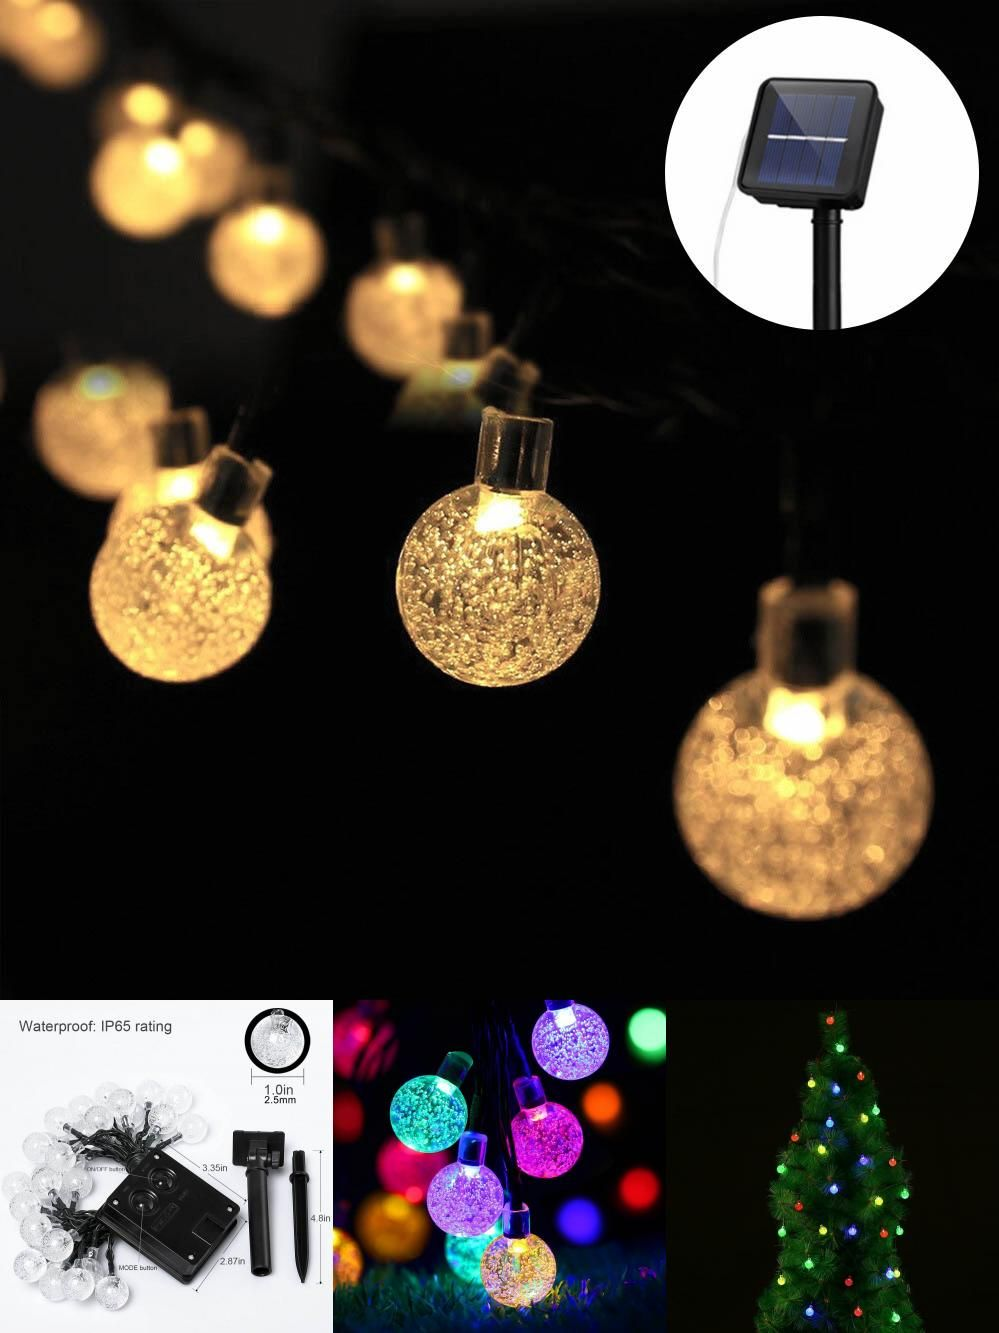 Visit to buy 7m outdoor waterproof solar led strings light decor visit to buy 7m outdoor waterproof solar led strings light decor ornament 30 crystal mozeypictures Gallery